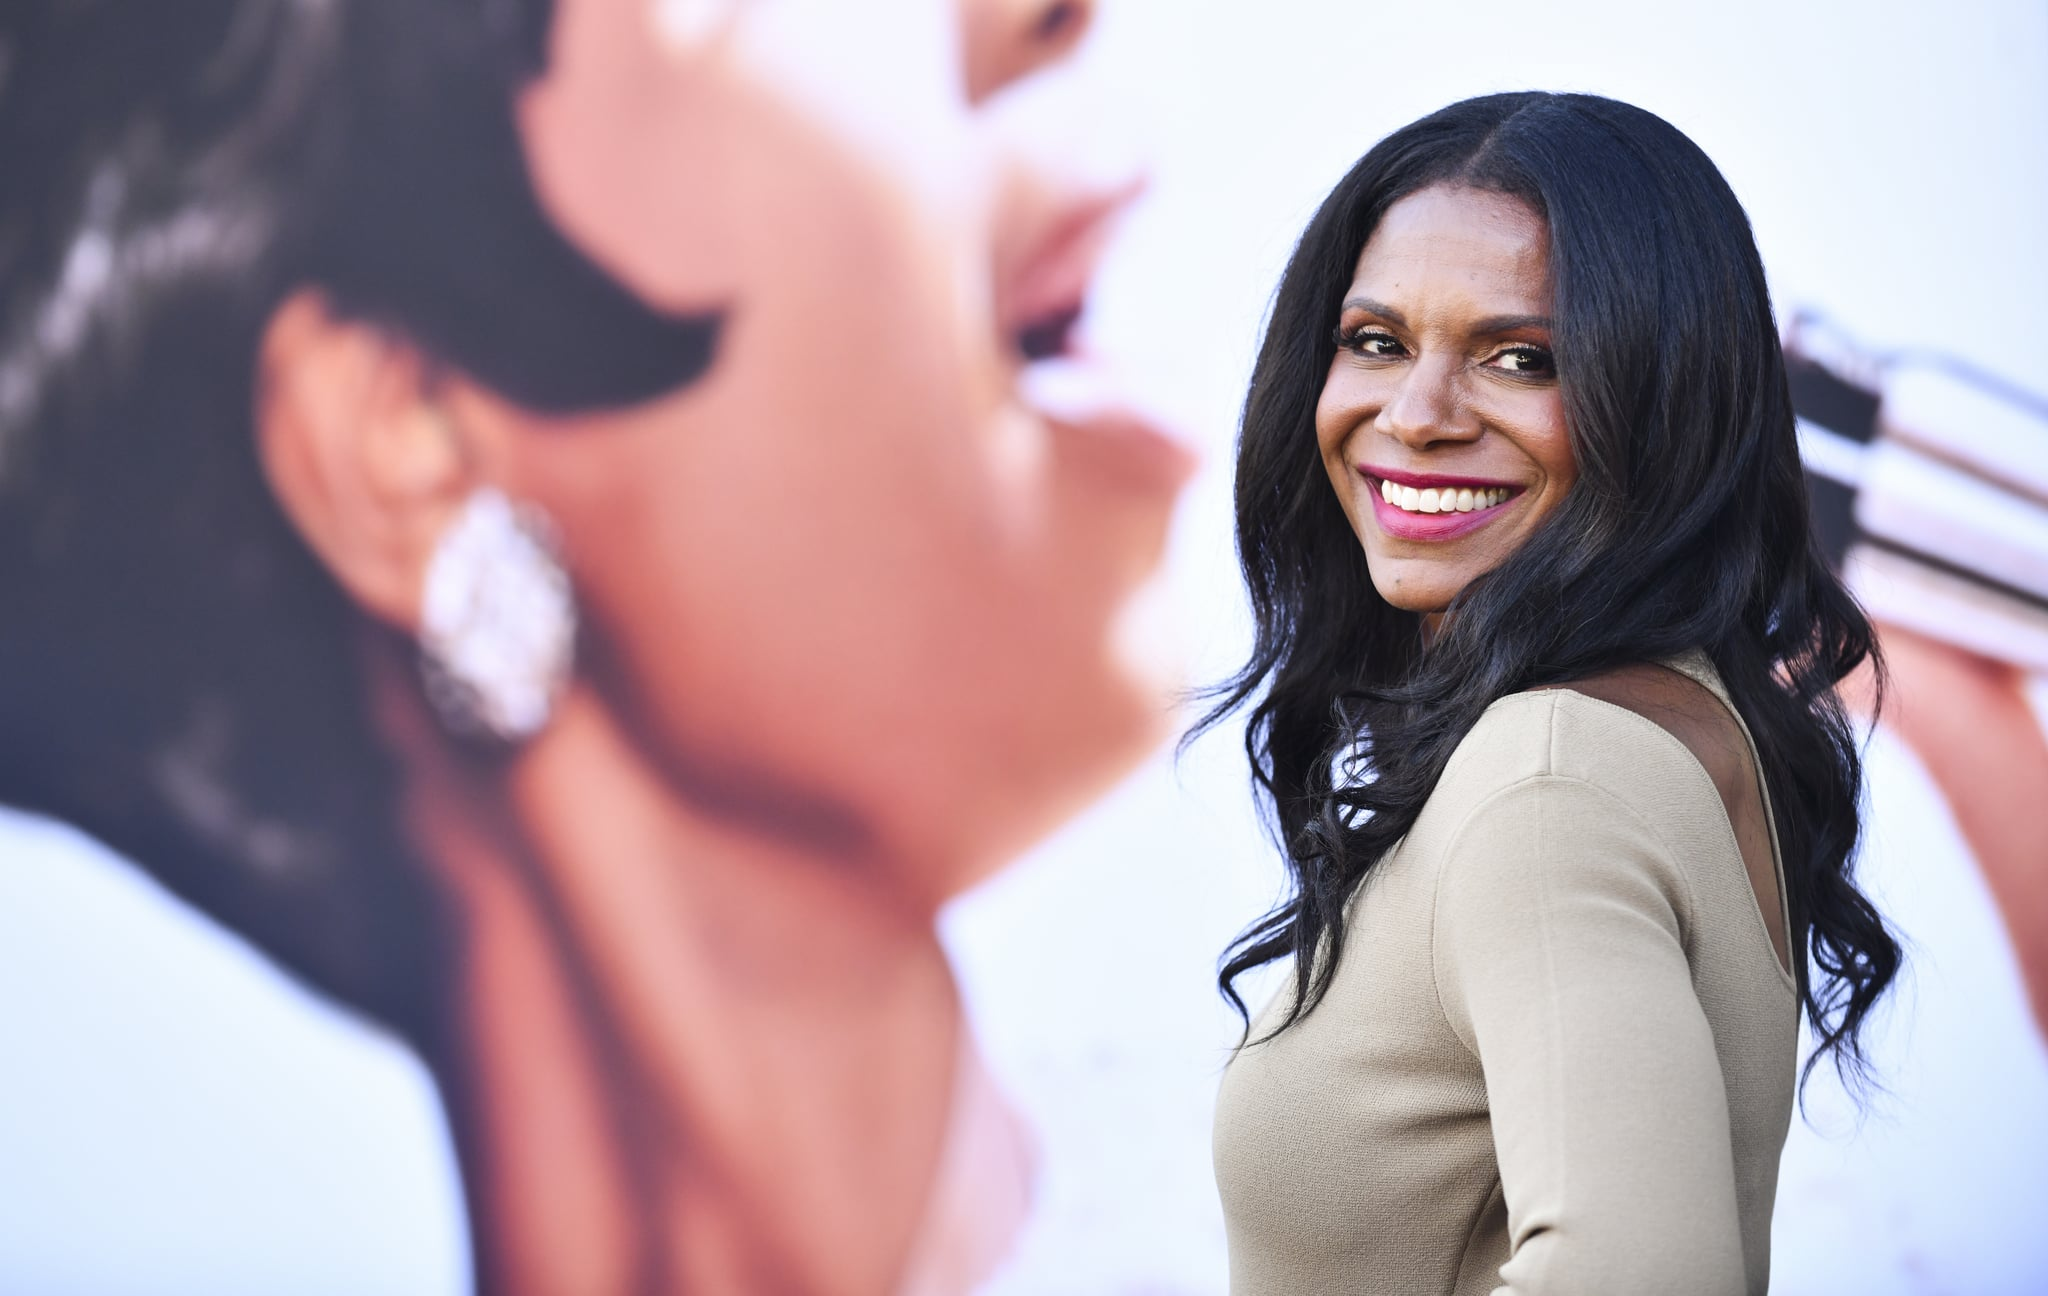 LOS ANGELES, CALIFORNIA - AUGUST 08: Audra McDonald attends the Los Angeles premiere of MGM's